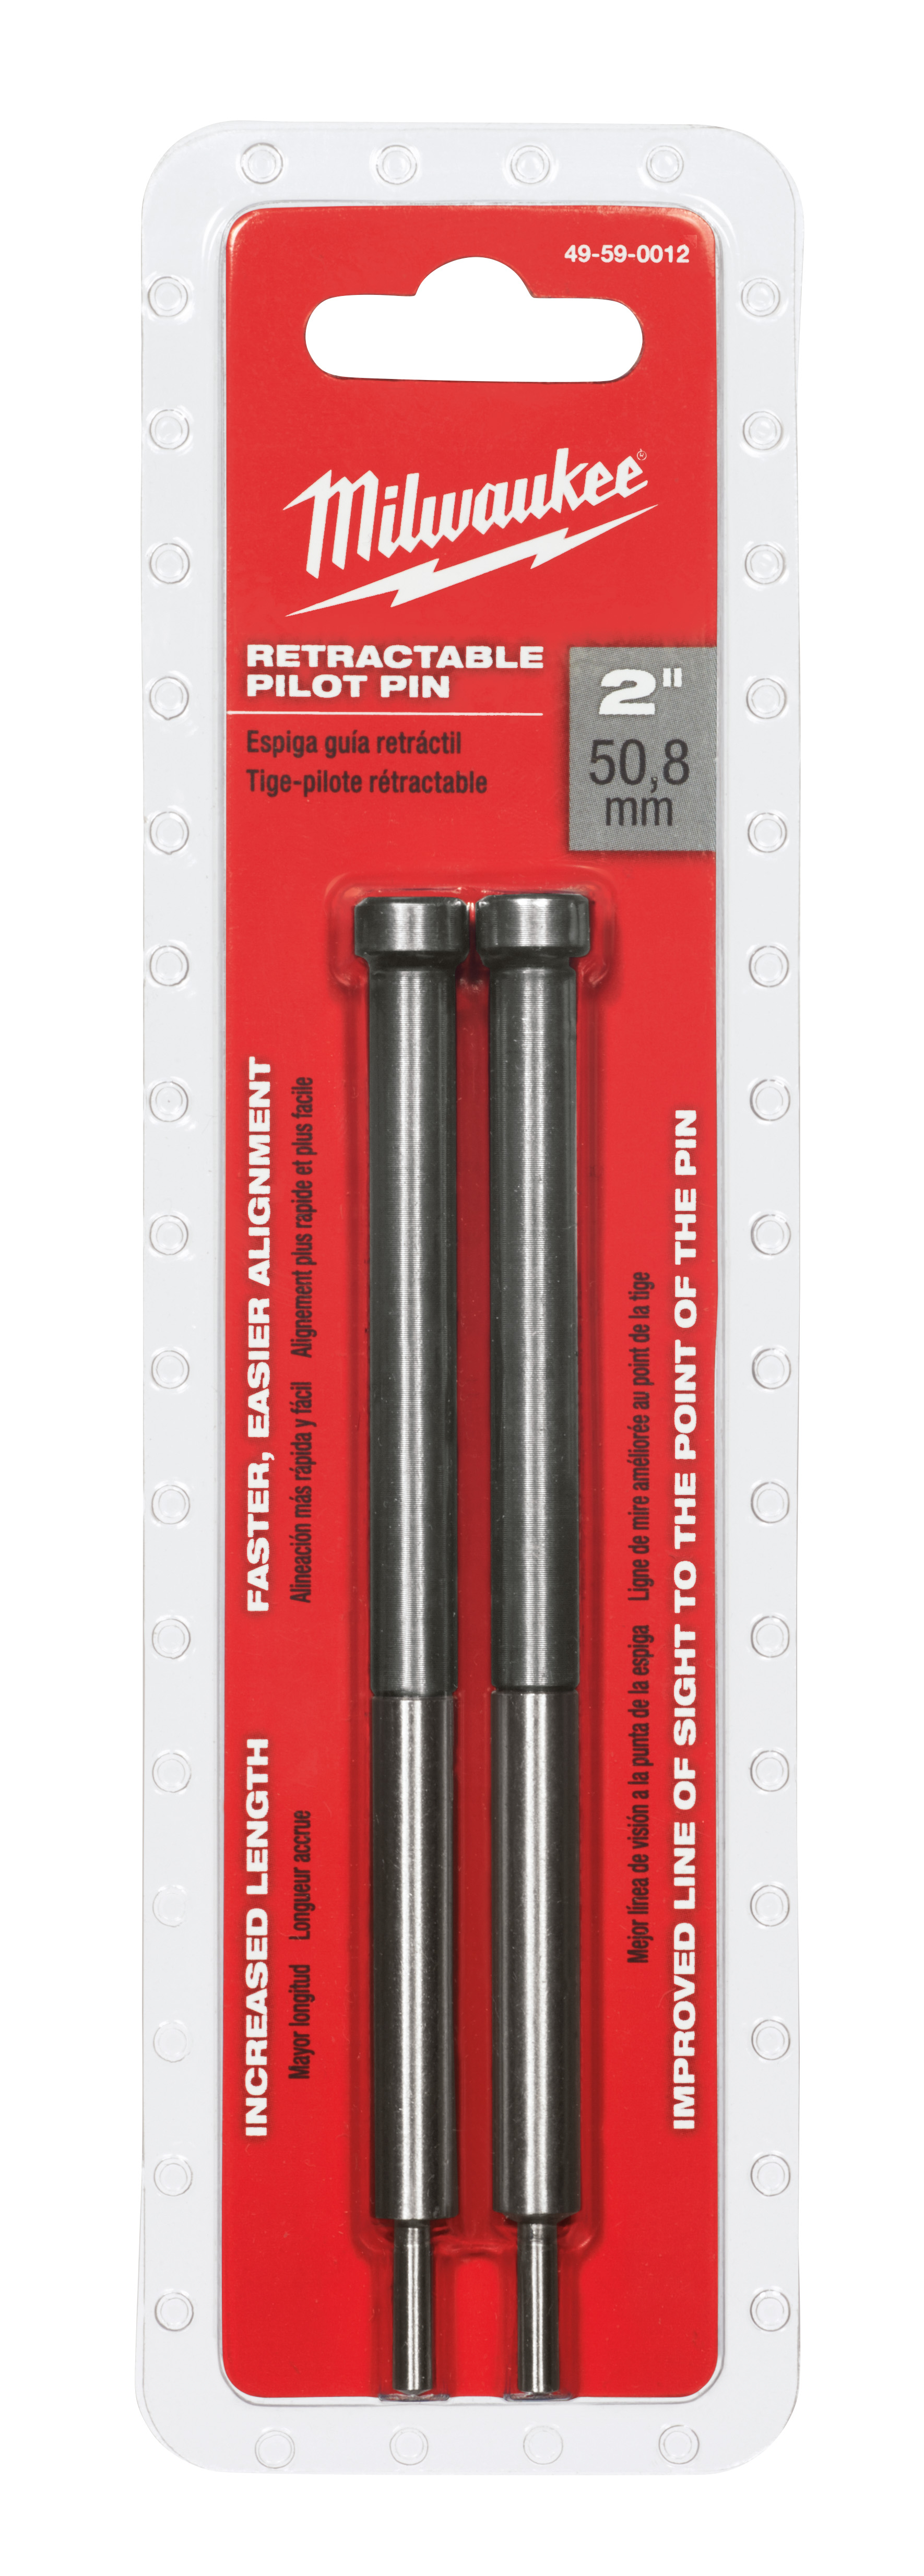 Milwaukee® 49-59-0012 Retractable Pilot Pin, For Use With Annular Cutter with 1 in Cutting Depth